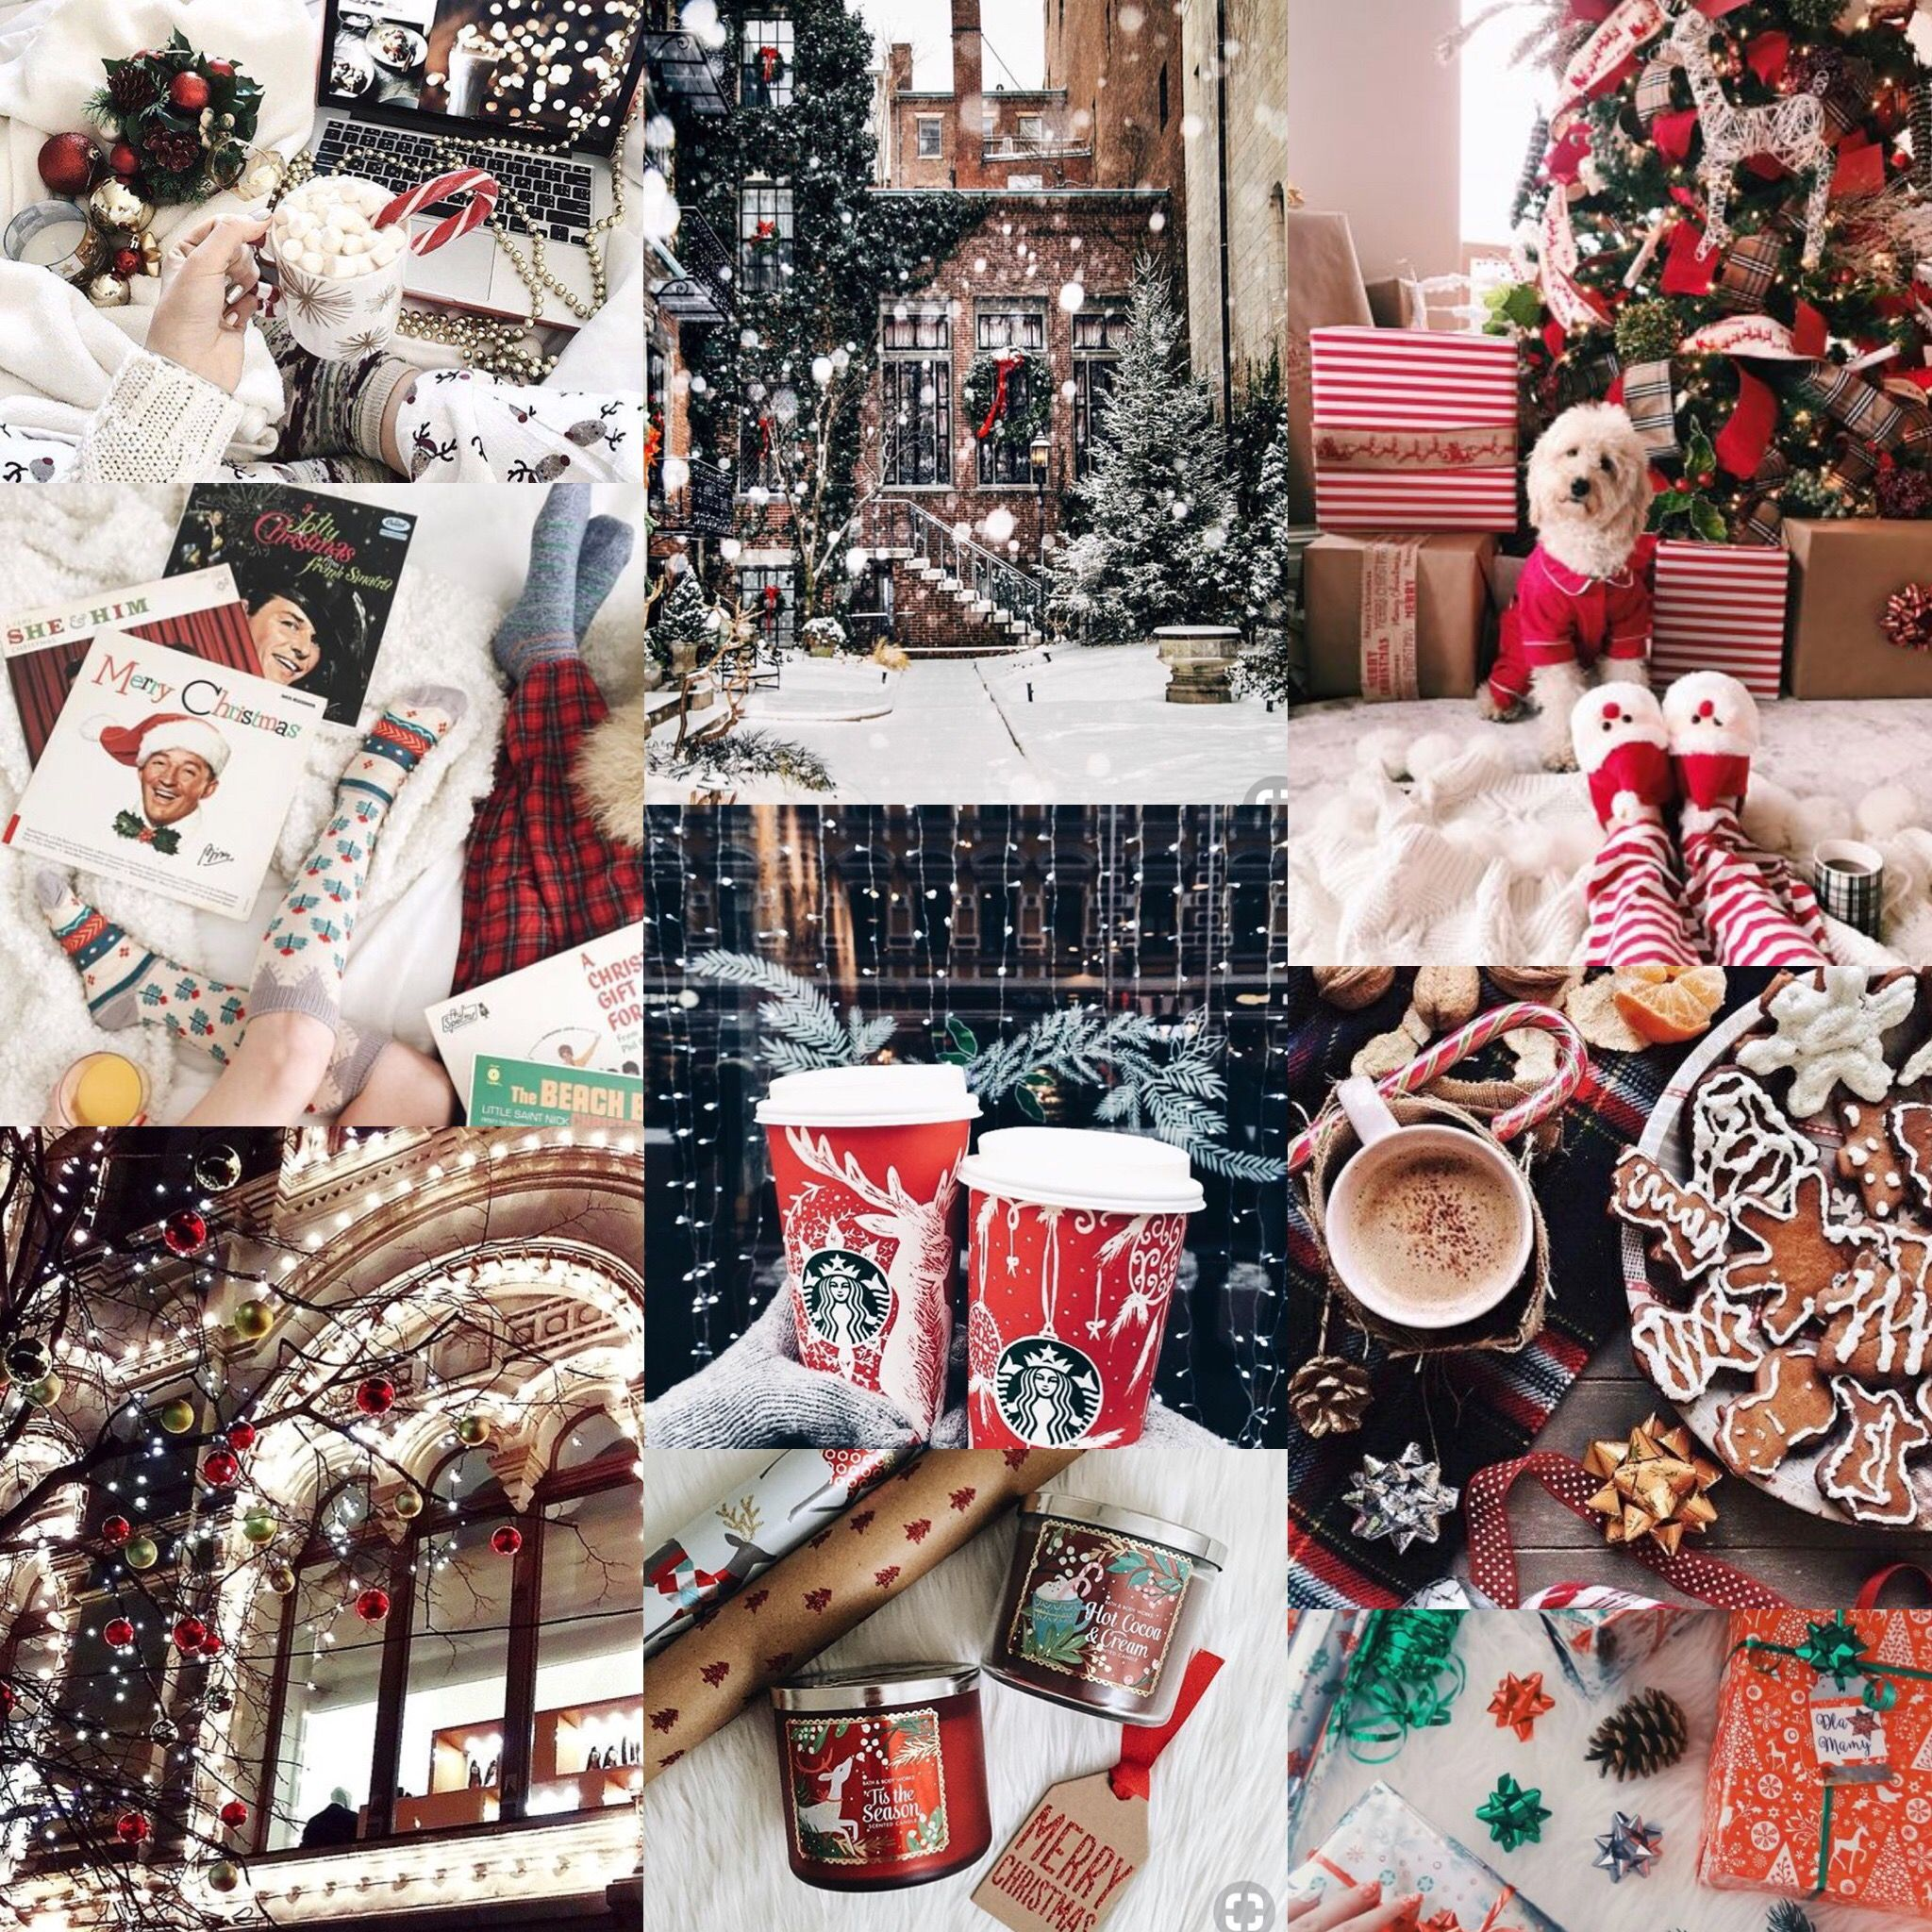 Christmas Christmastumblr Christmasbackground Christmasaesthetic Christmas Aesthetic Christmas Background Christmas Tumblr